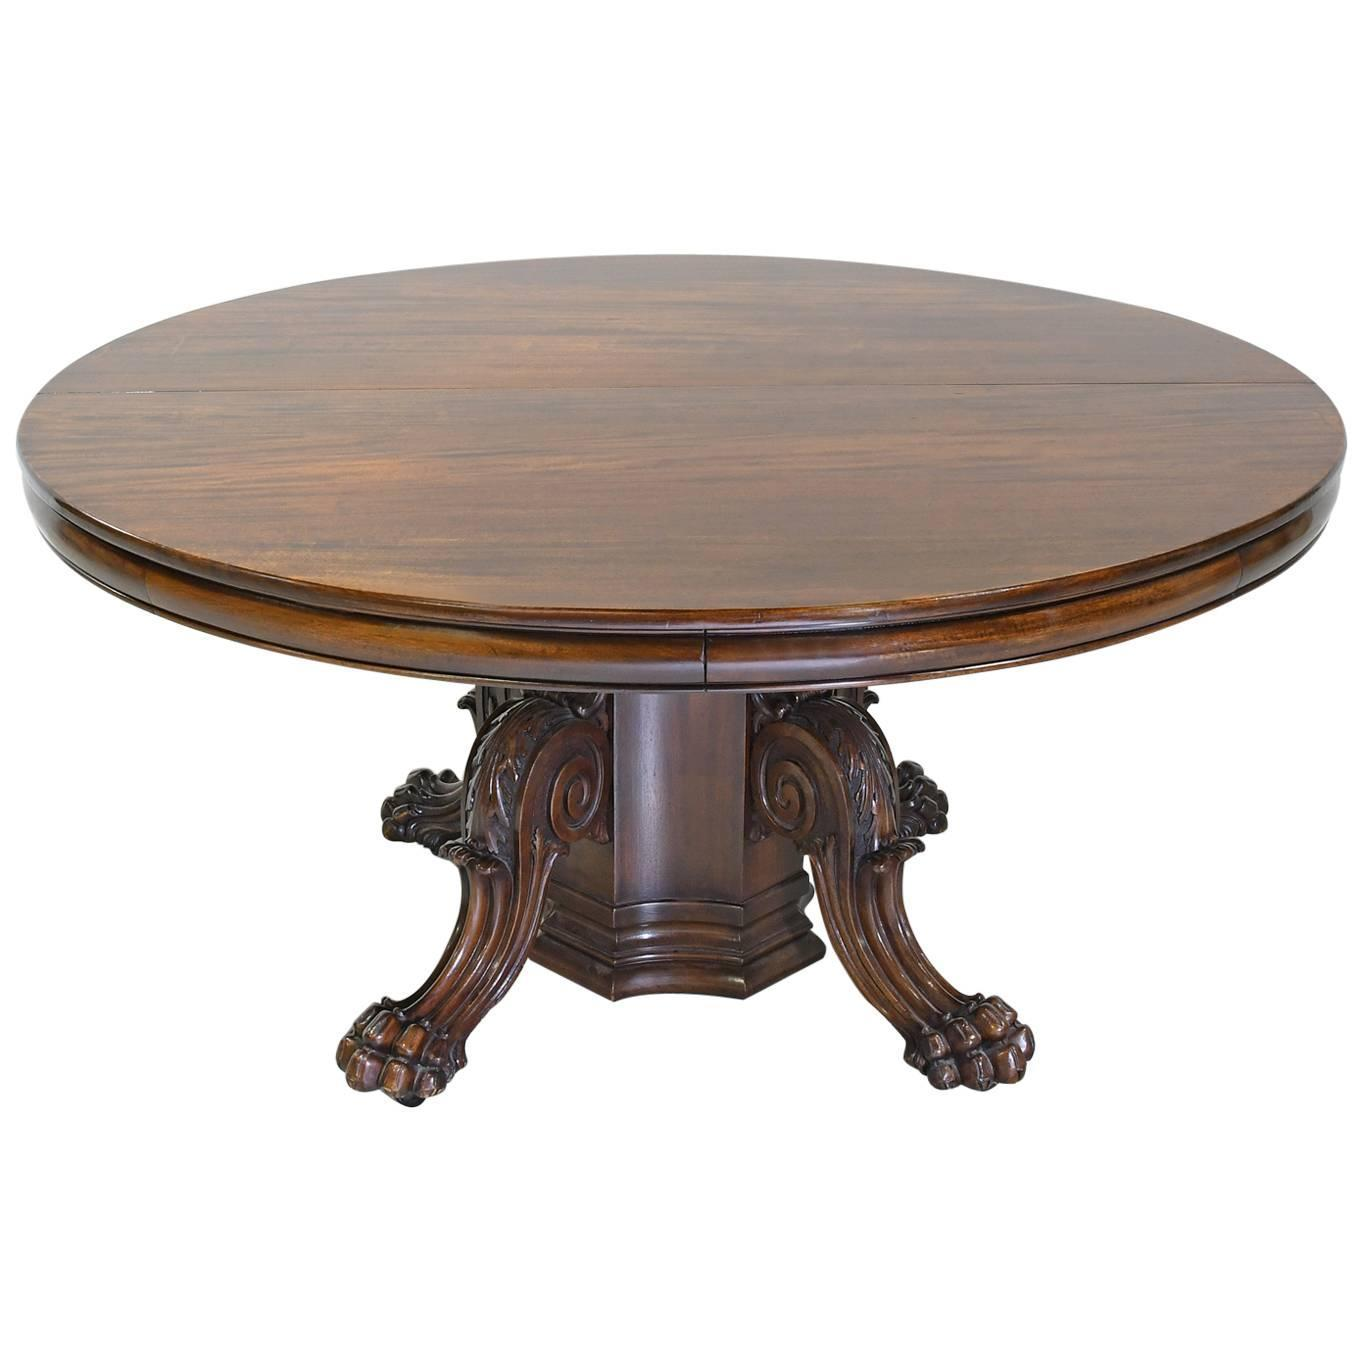 Round american empire center pedestal dining table with for Dining room tables with leaves